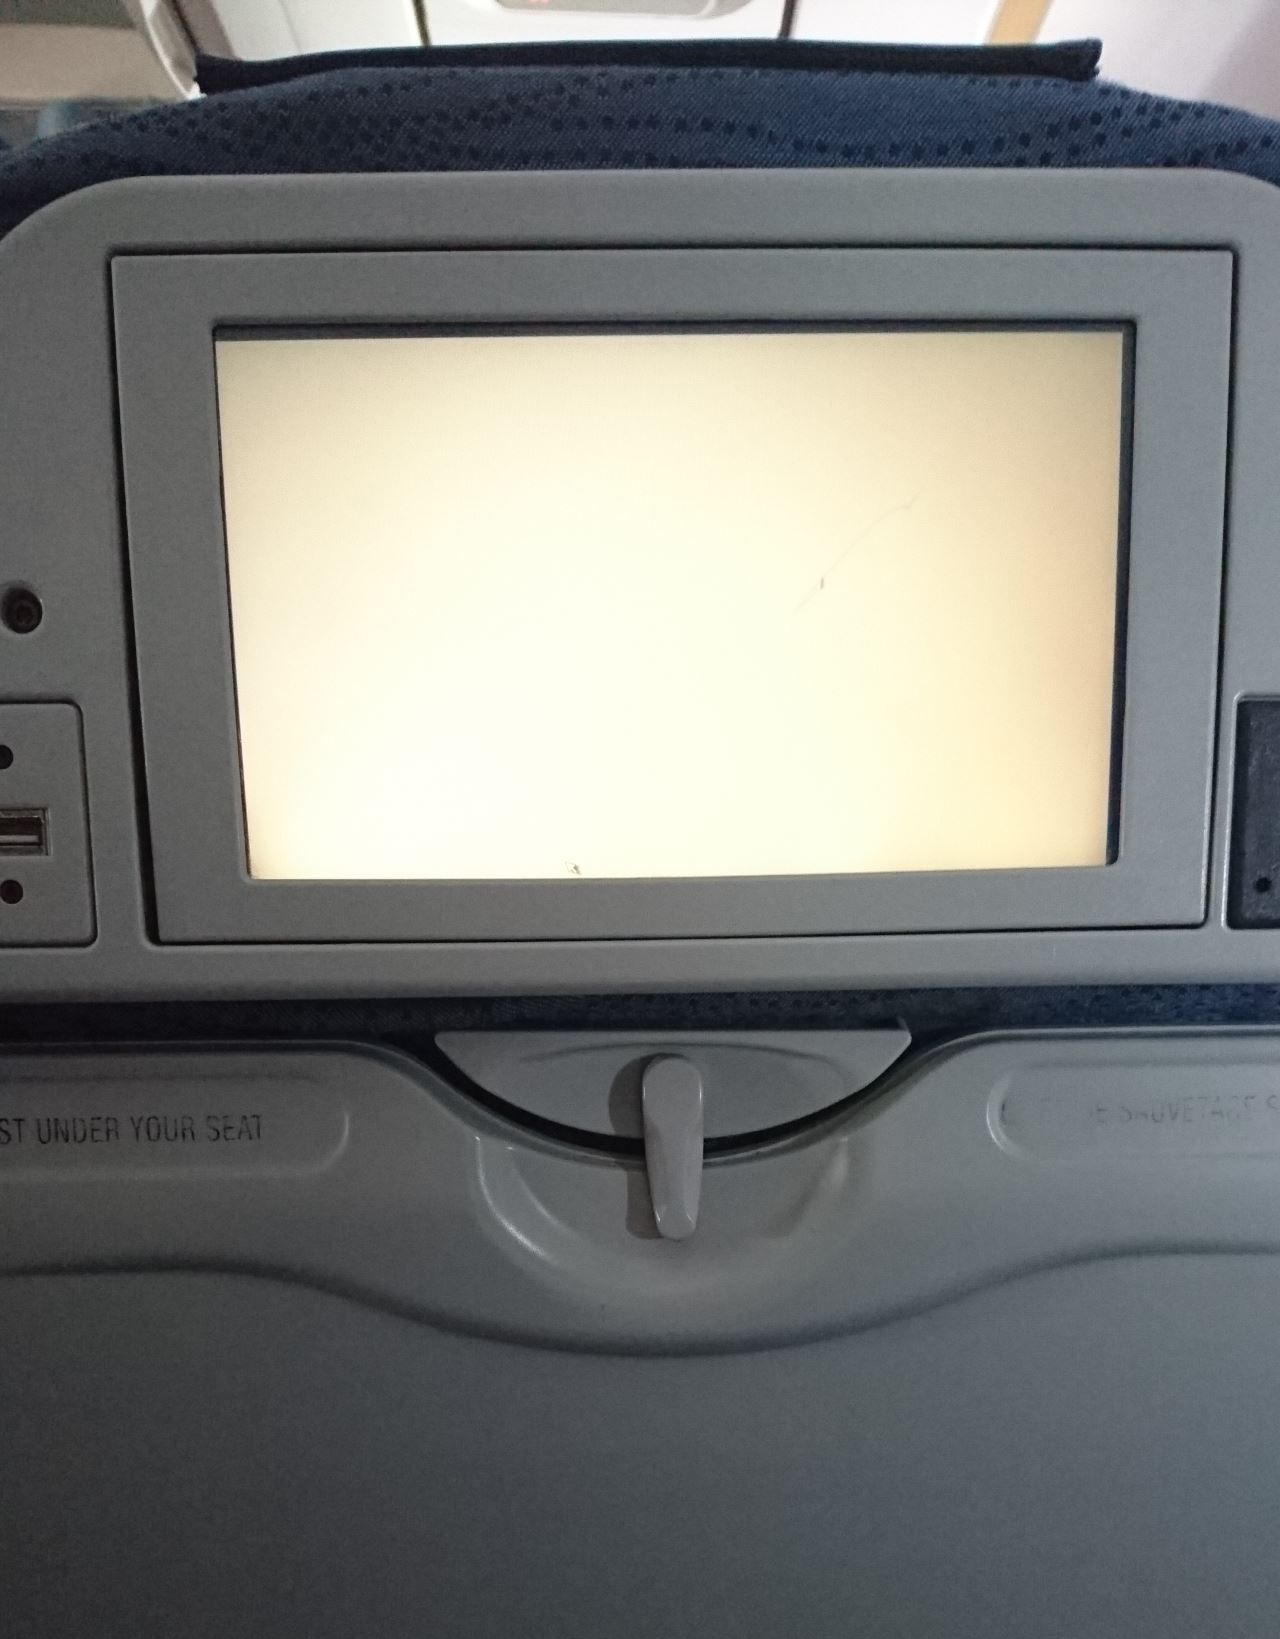 Air Canada Airbus A321 200 Economy Class cabin infligt entertainment IFE screen system